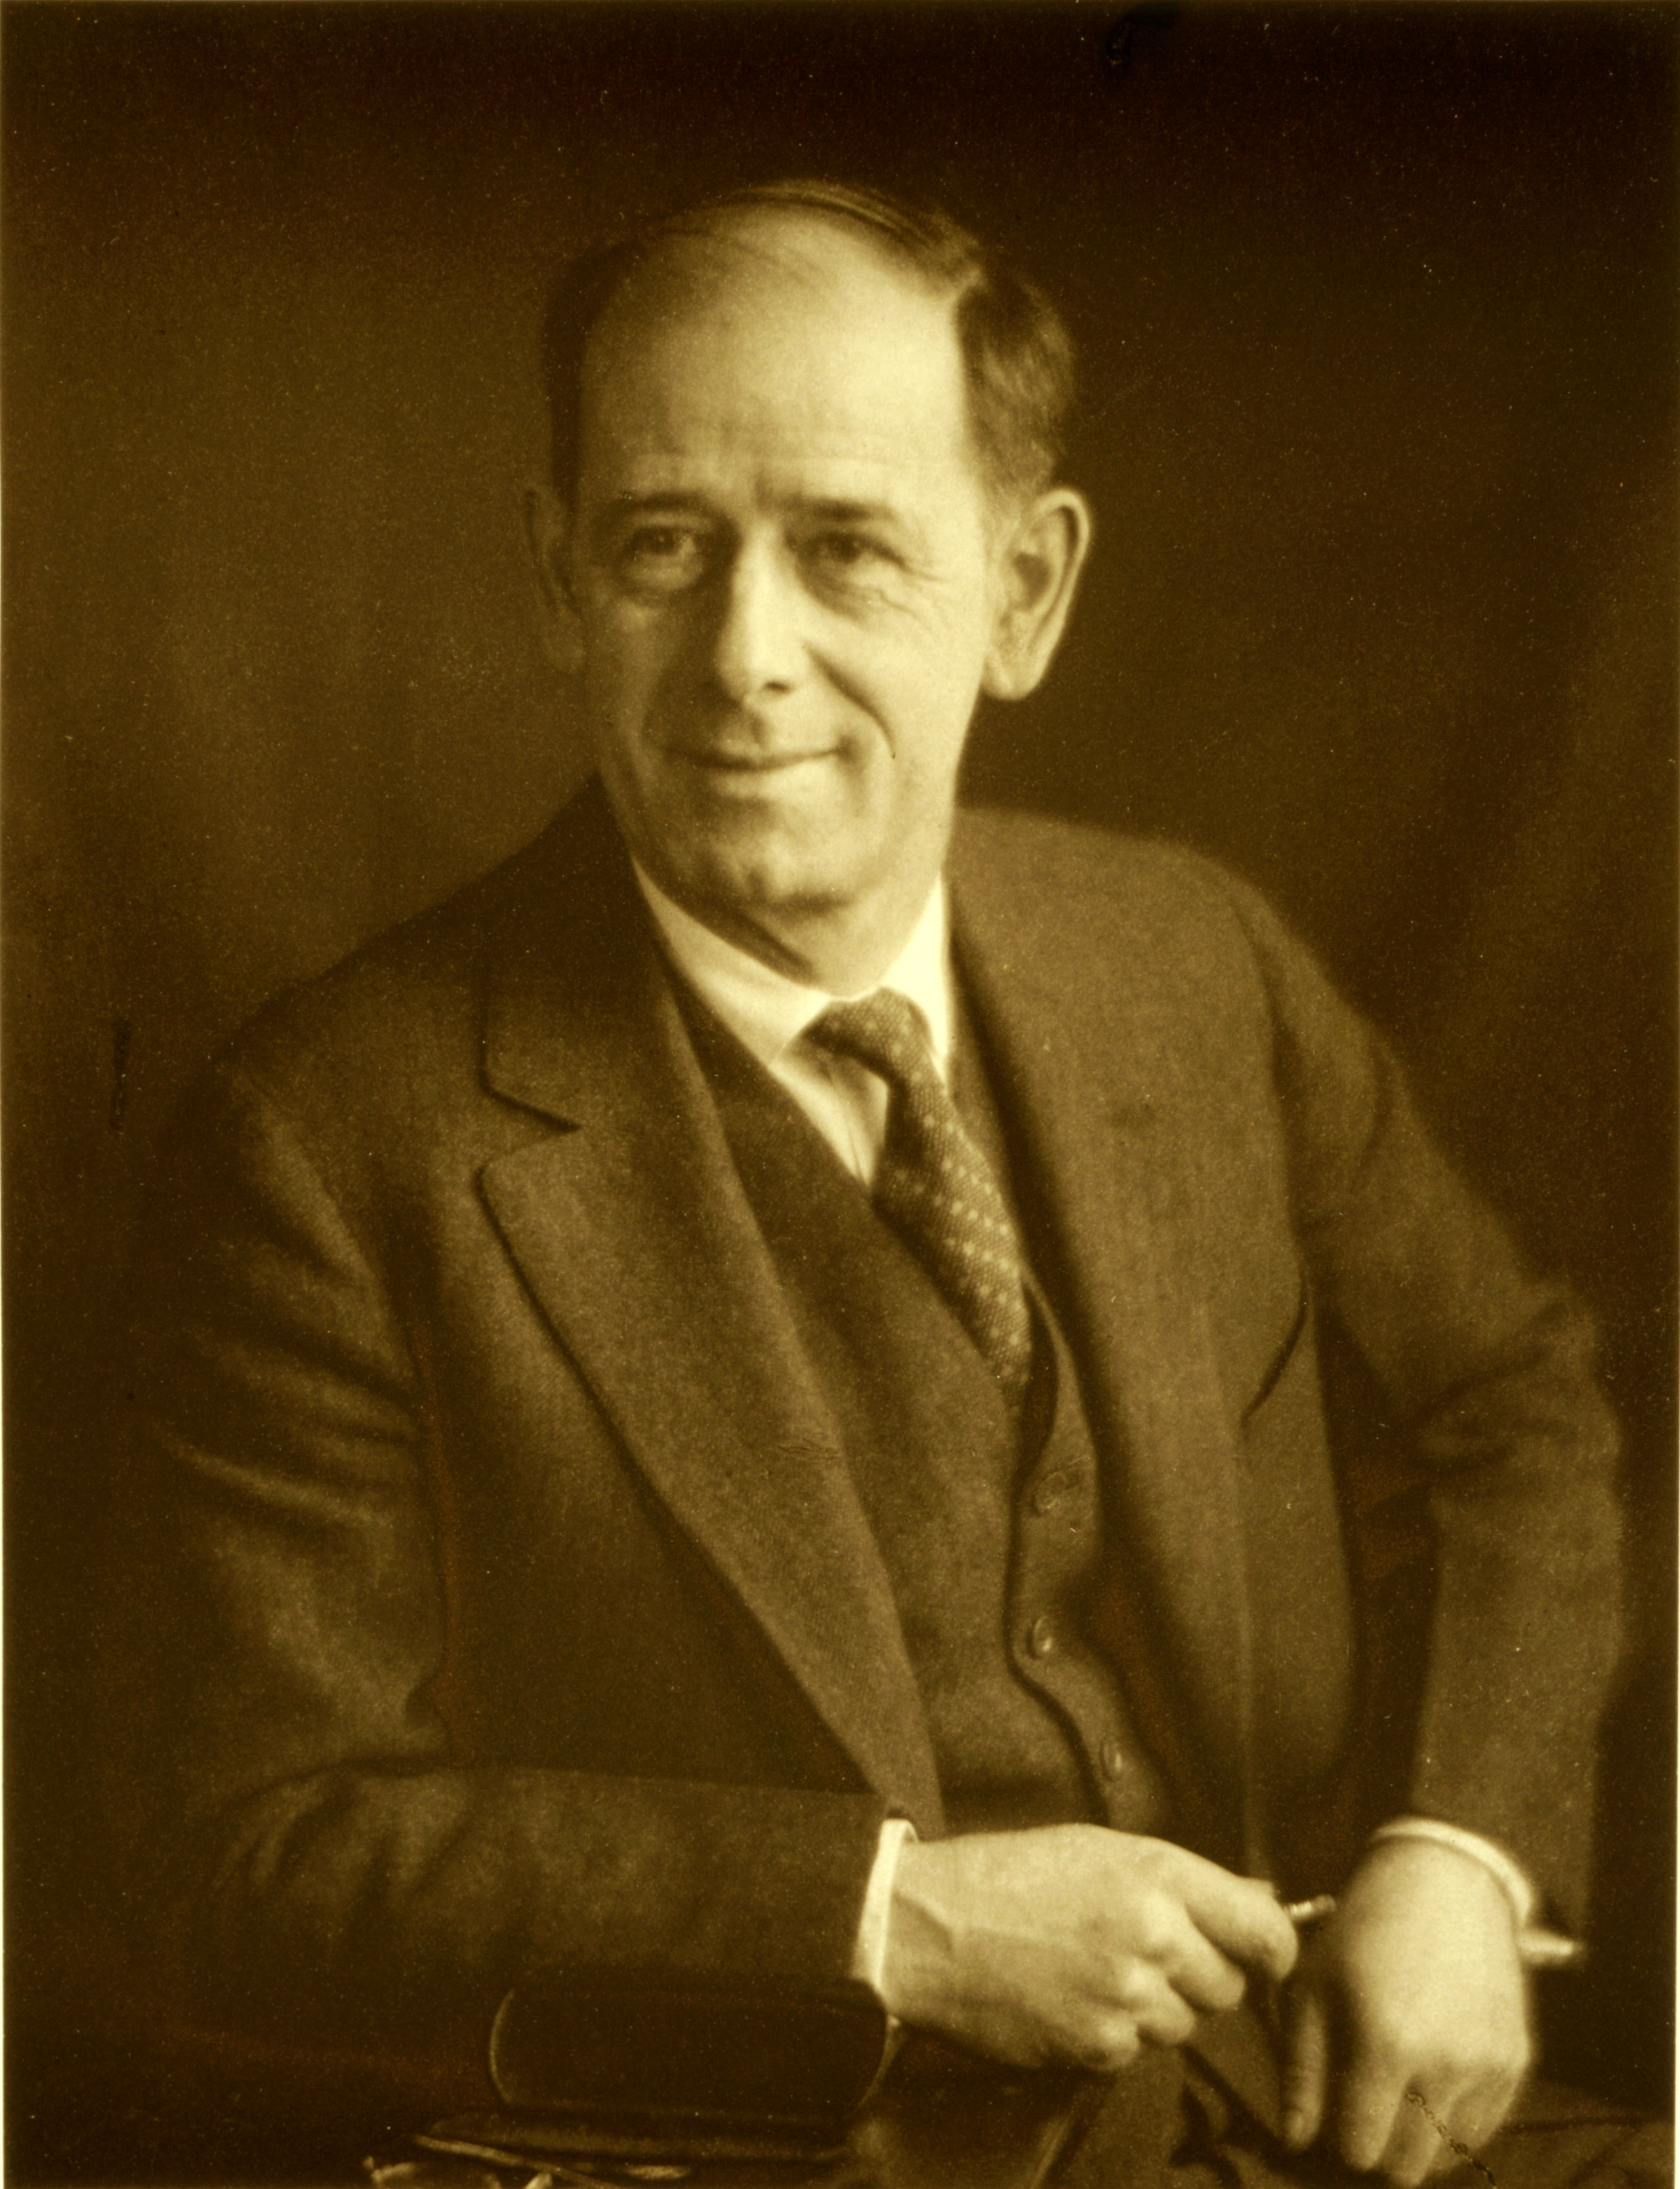 Image of Clarence Hudson White from Wikidata